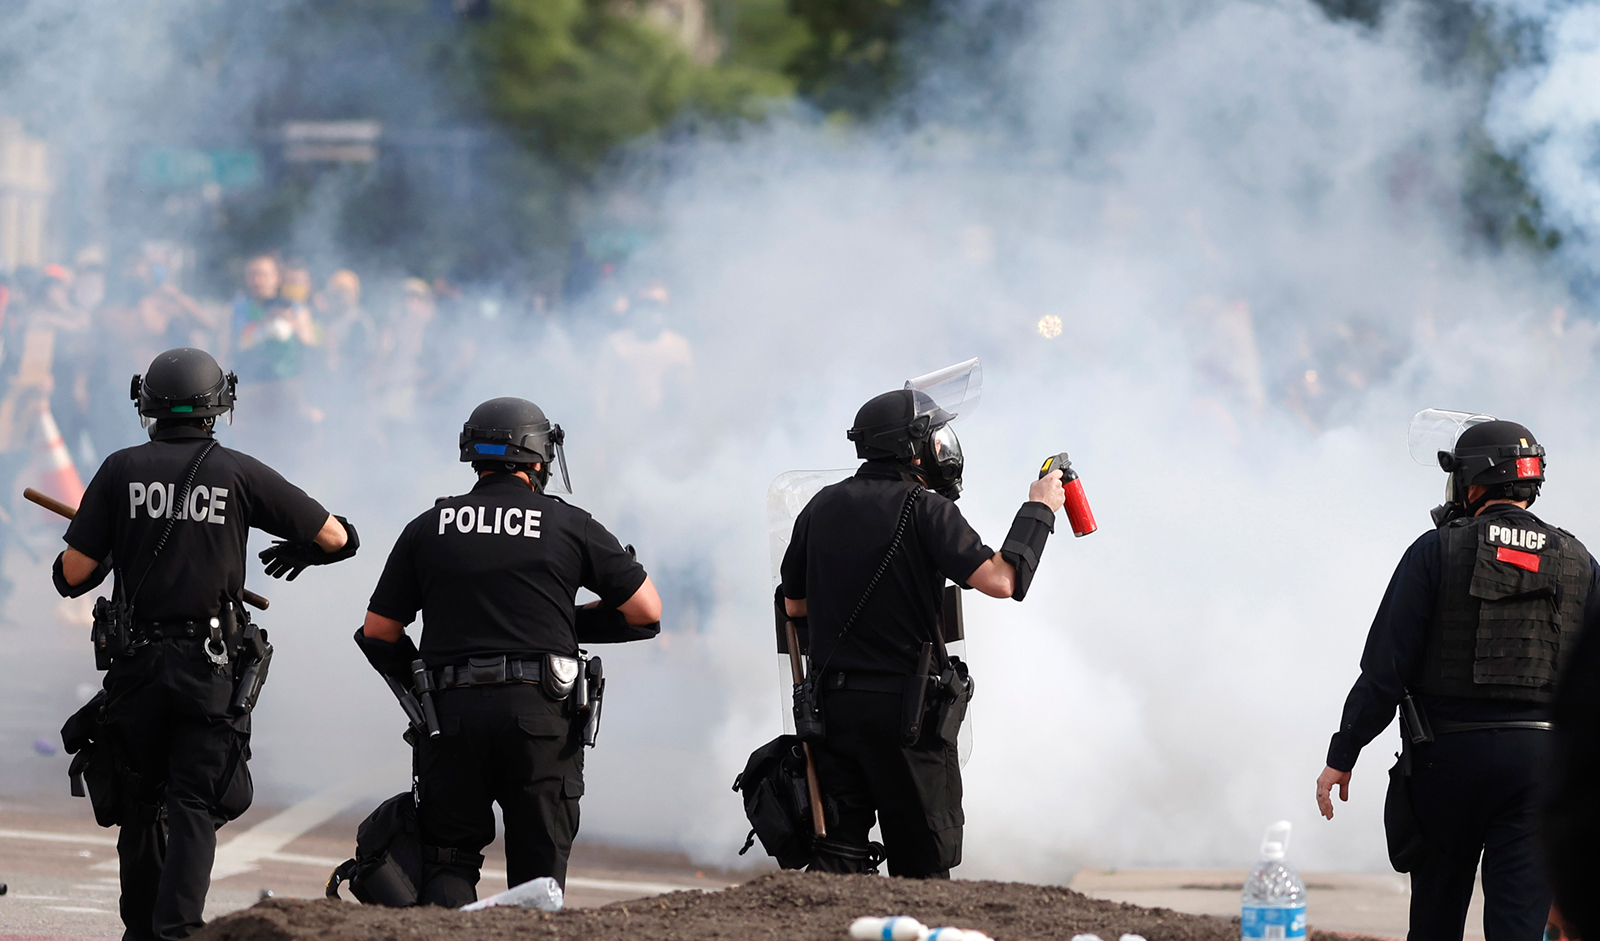 Temporary restraining order prohibits Denver Police from using chemical agents or projectiles against peaceful protesters without supervisor approval